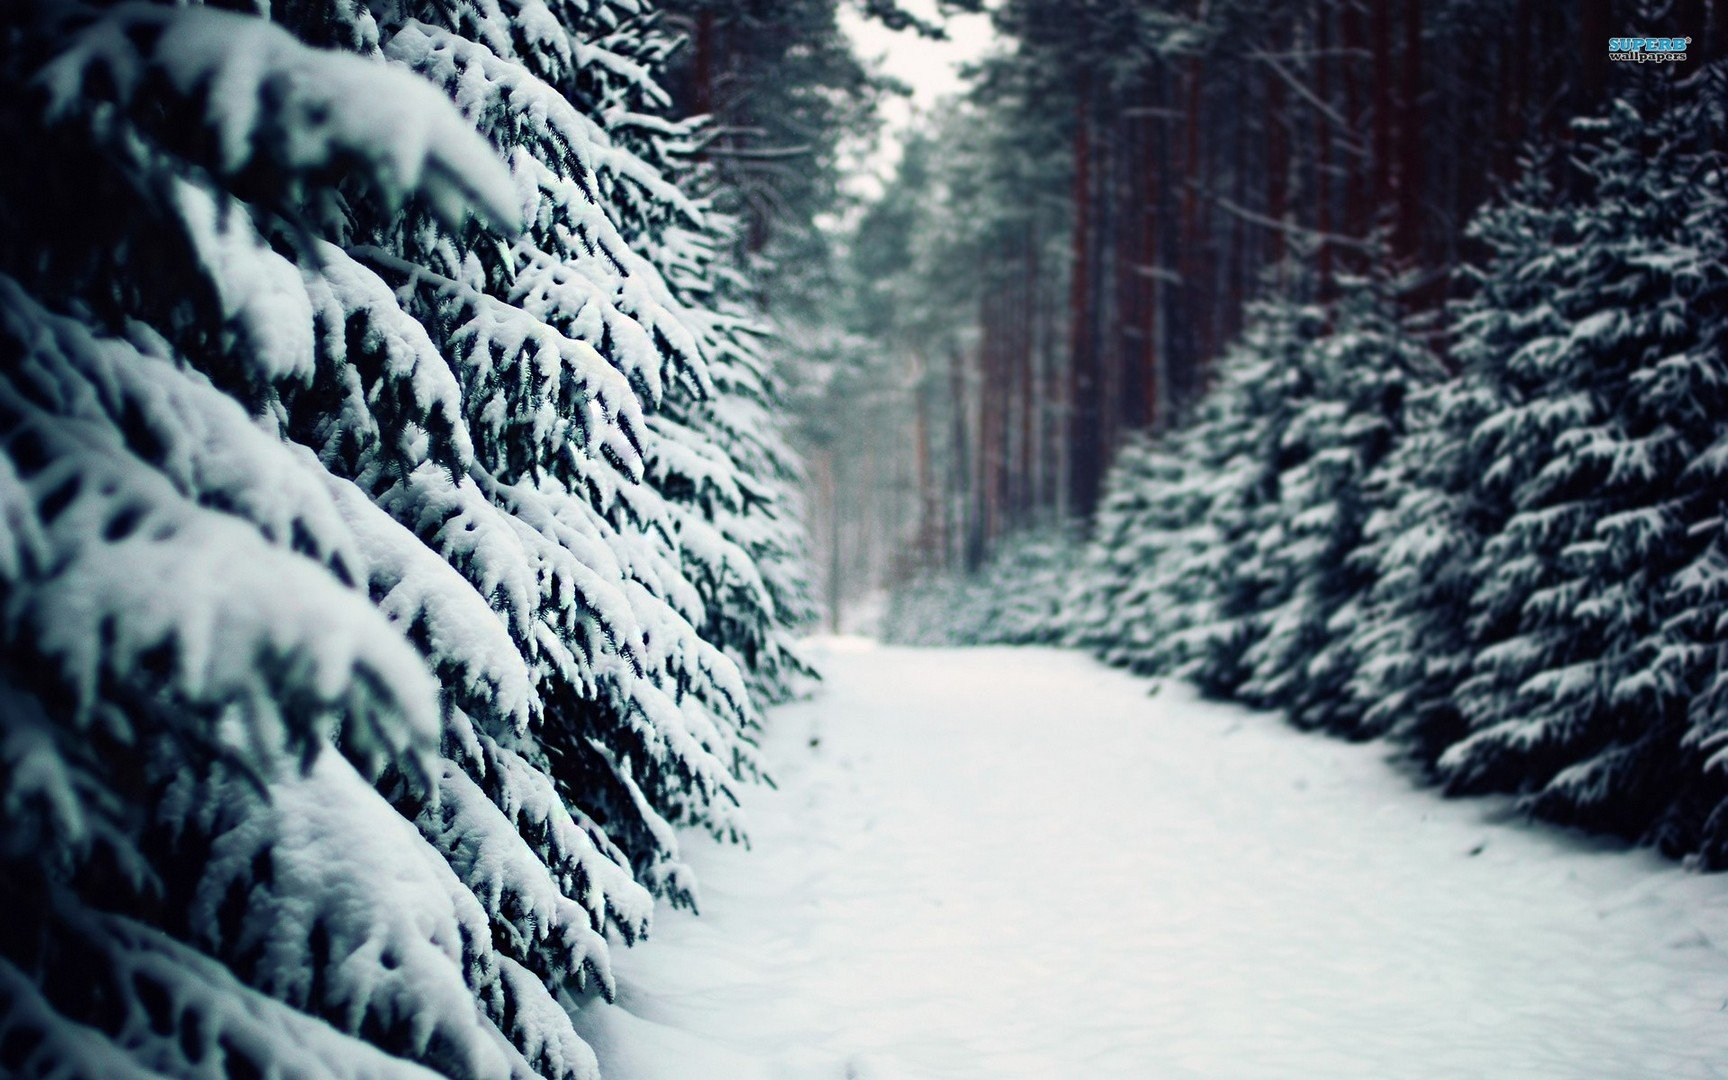 Pin Snowy Forest Road Wallpaper 2560x1600 1728x1080